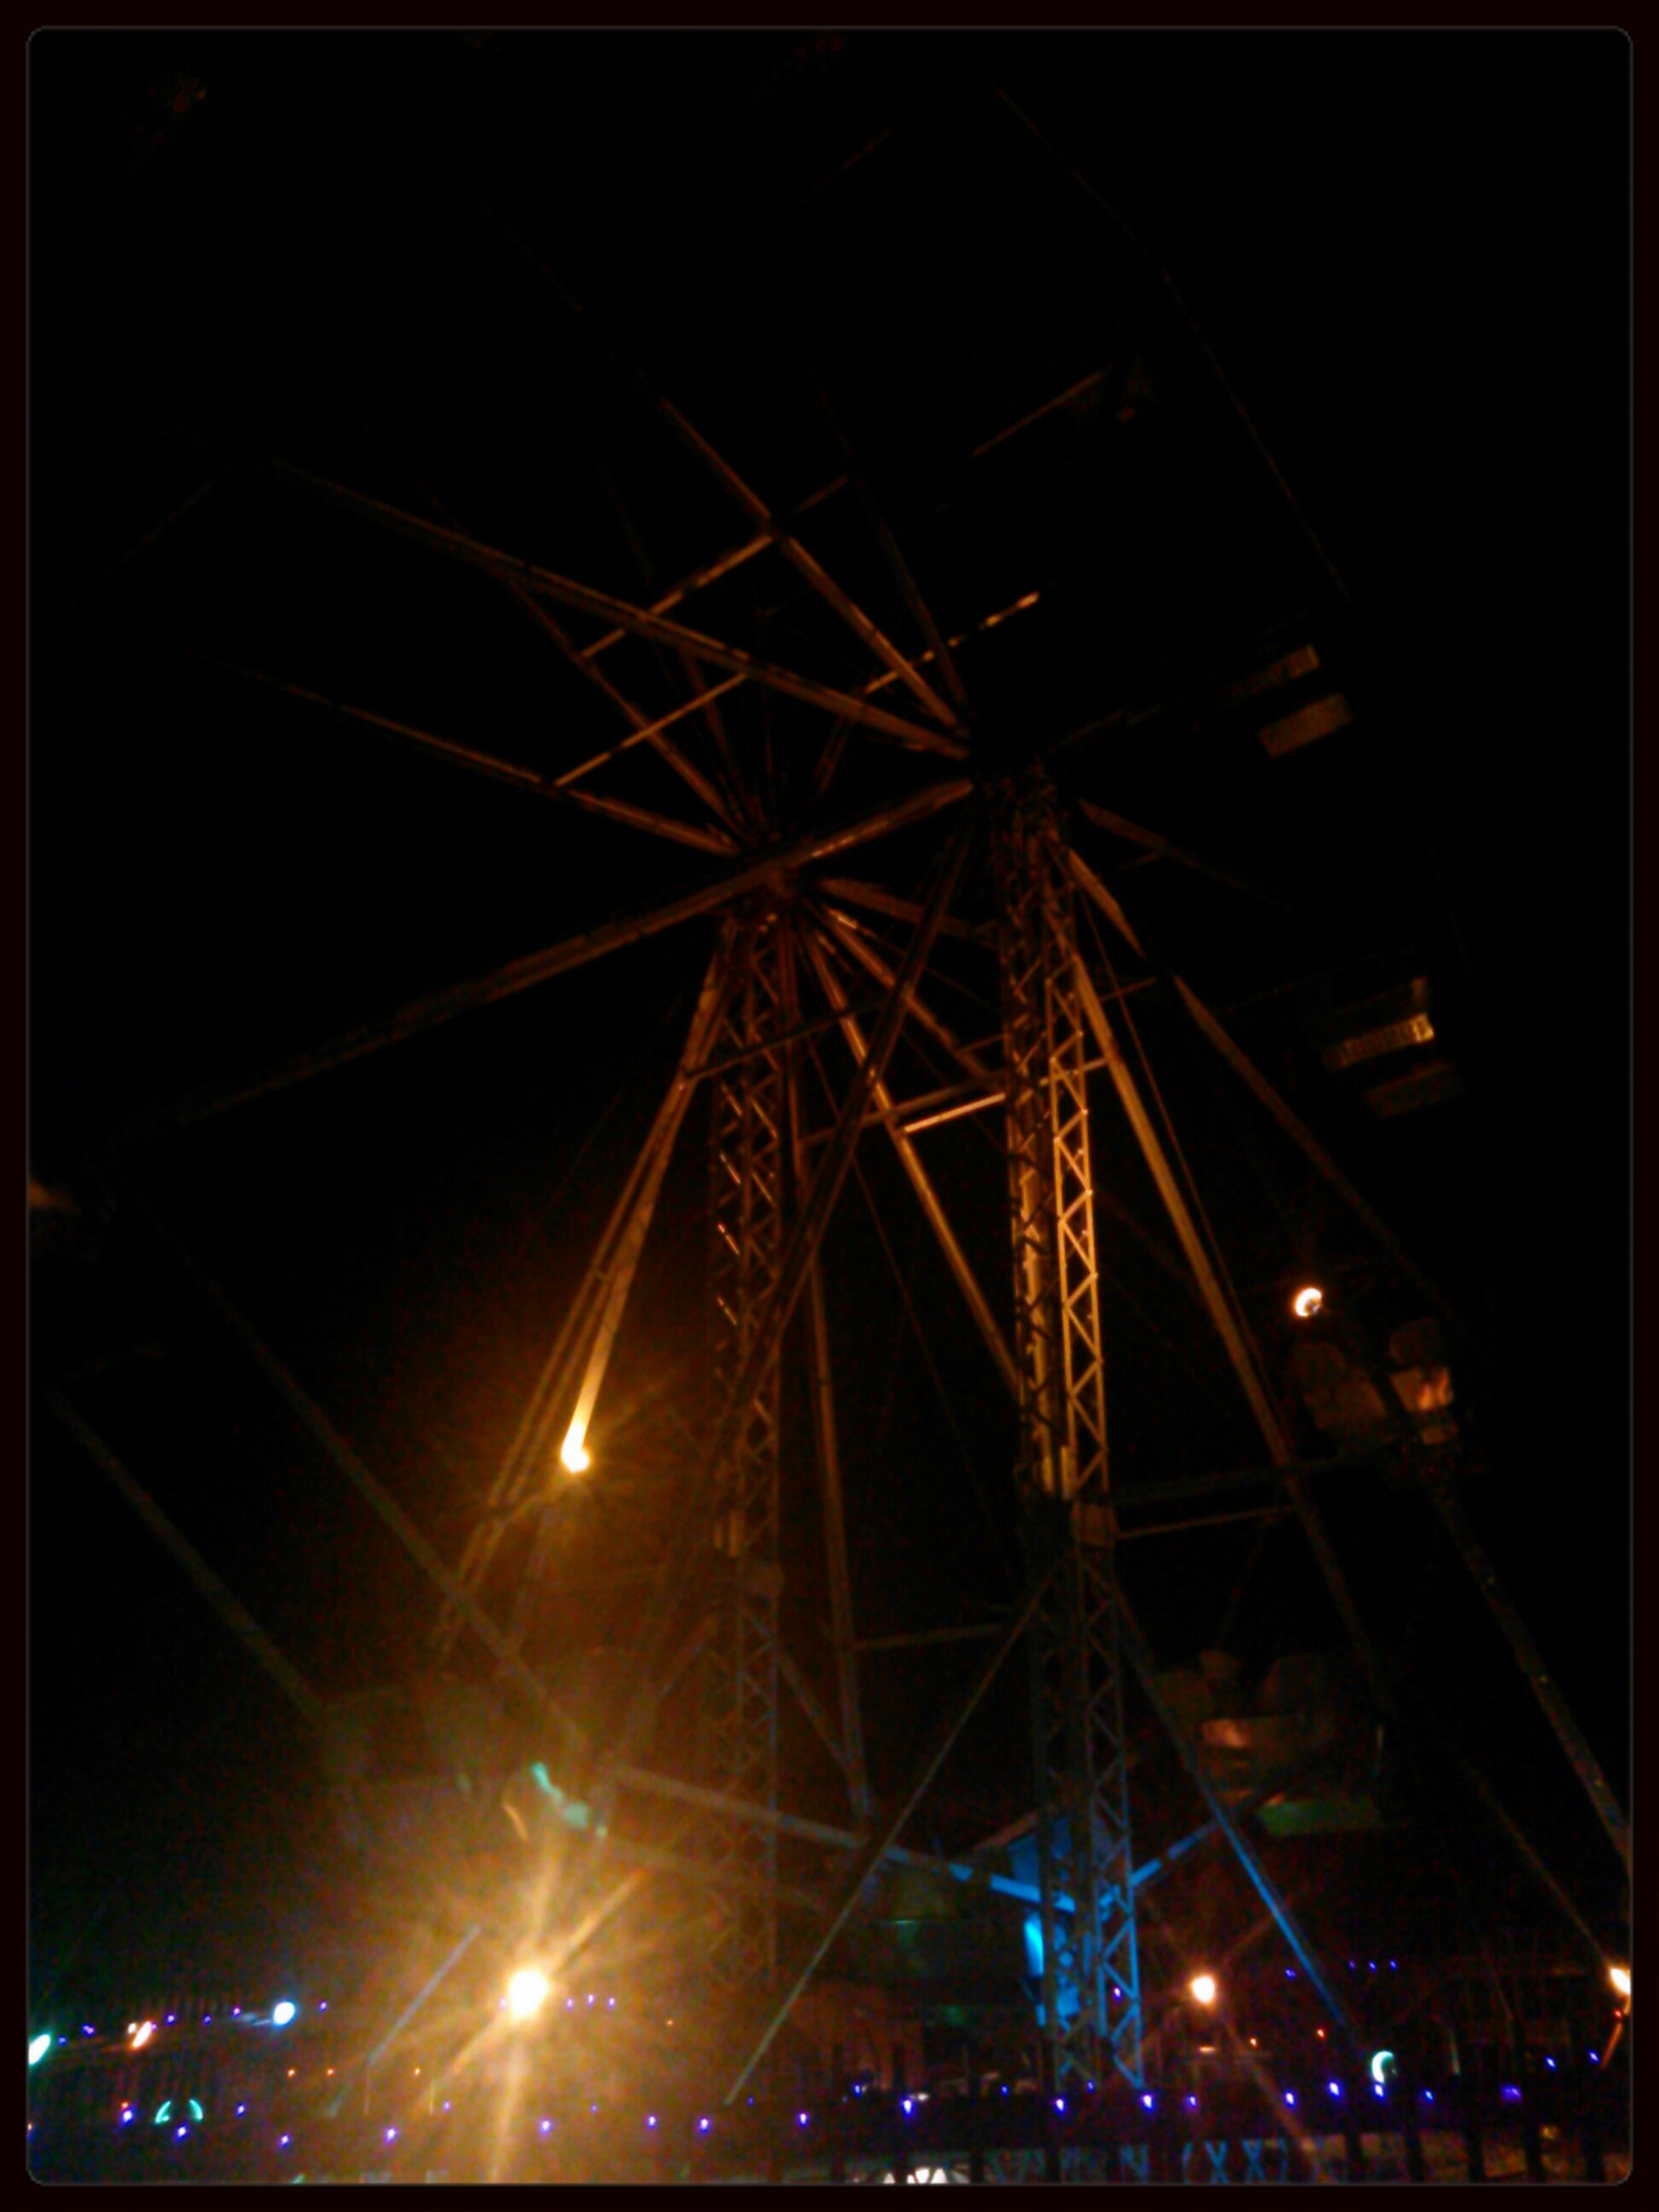 night, illuminated, low angle view, arts culture and entertainment, built structure, sky, architecture, amusement park, ferris wheel, amusement park ride, lighting equipment, outdoors, no people, transfer print, glowing, city, building exterior, celebration, clear sky, auto post production filter